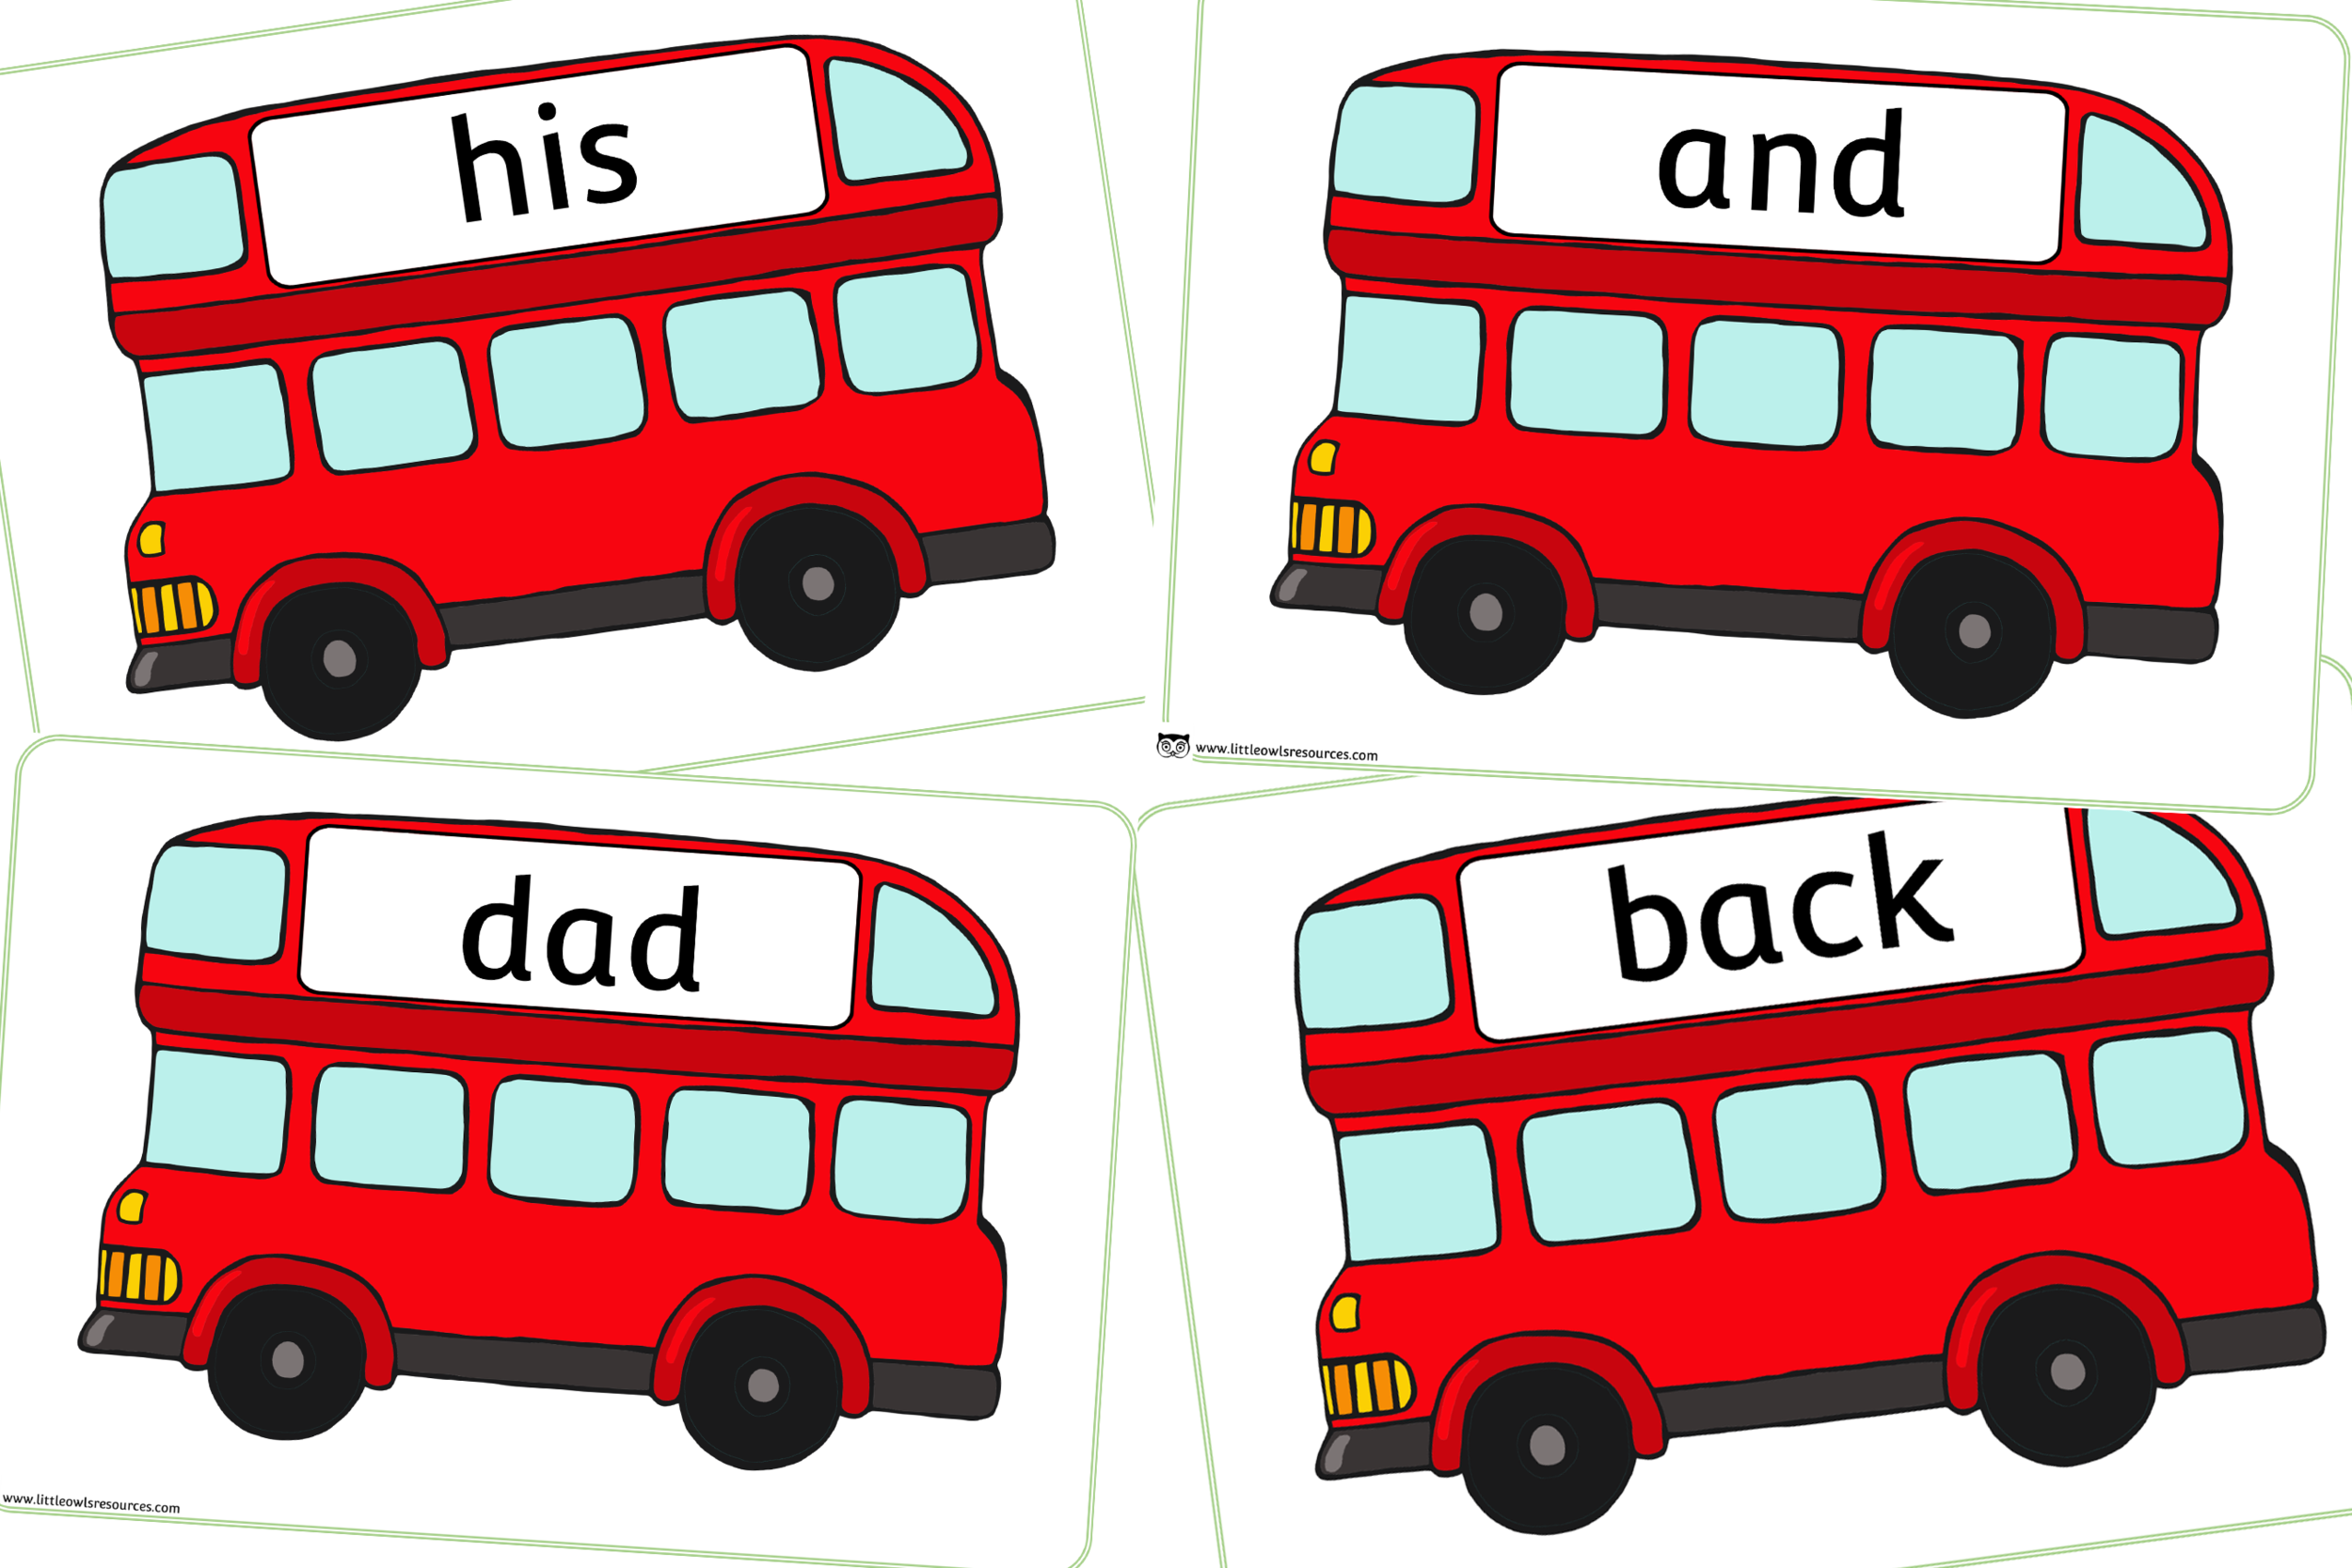 PHASE 2 WORDS - BUS